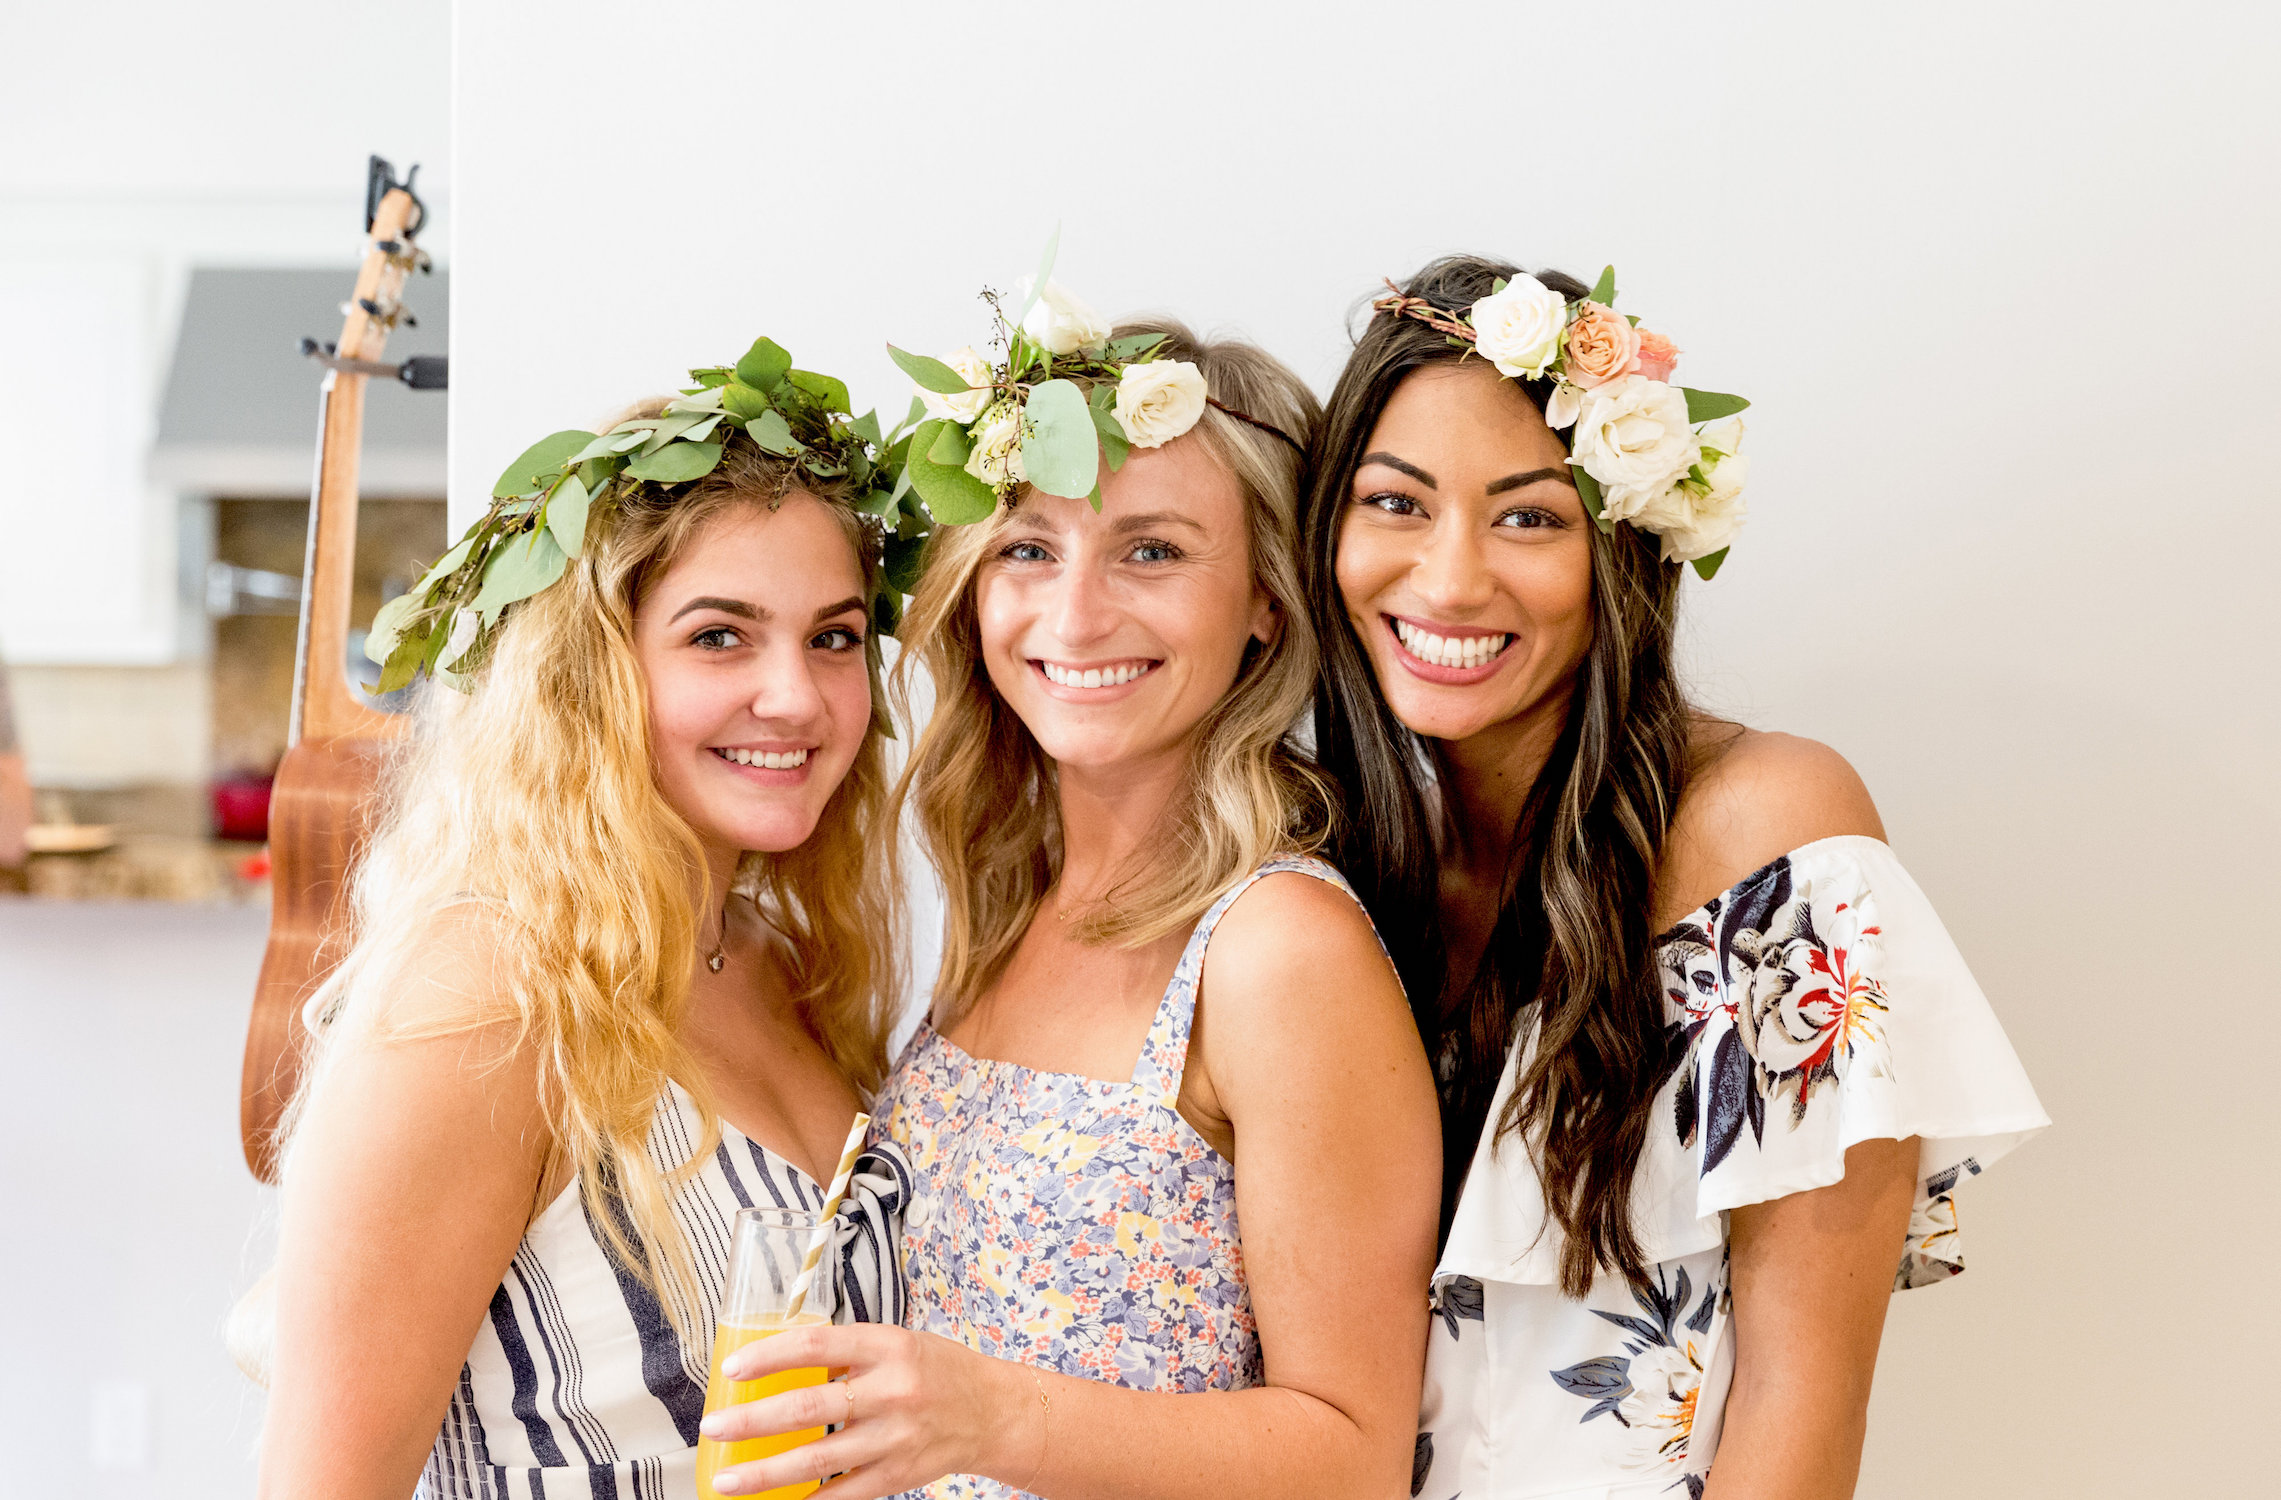 Flower Crown Baby Shower Girls 0073.jpg